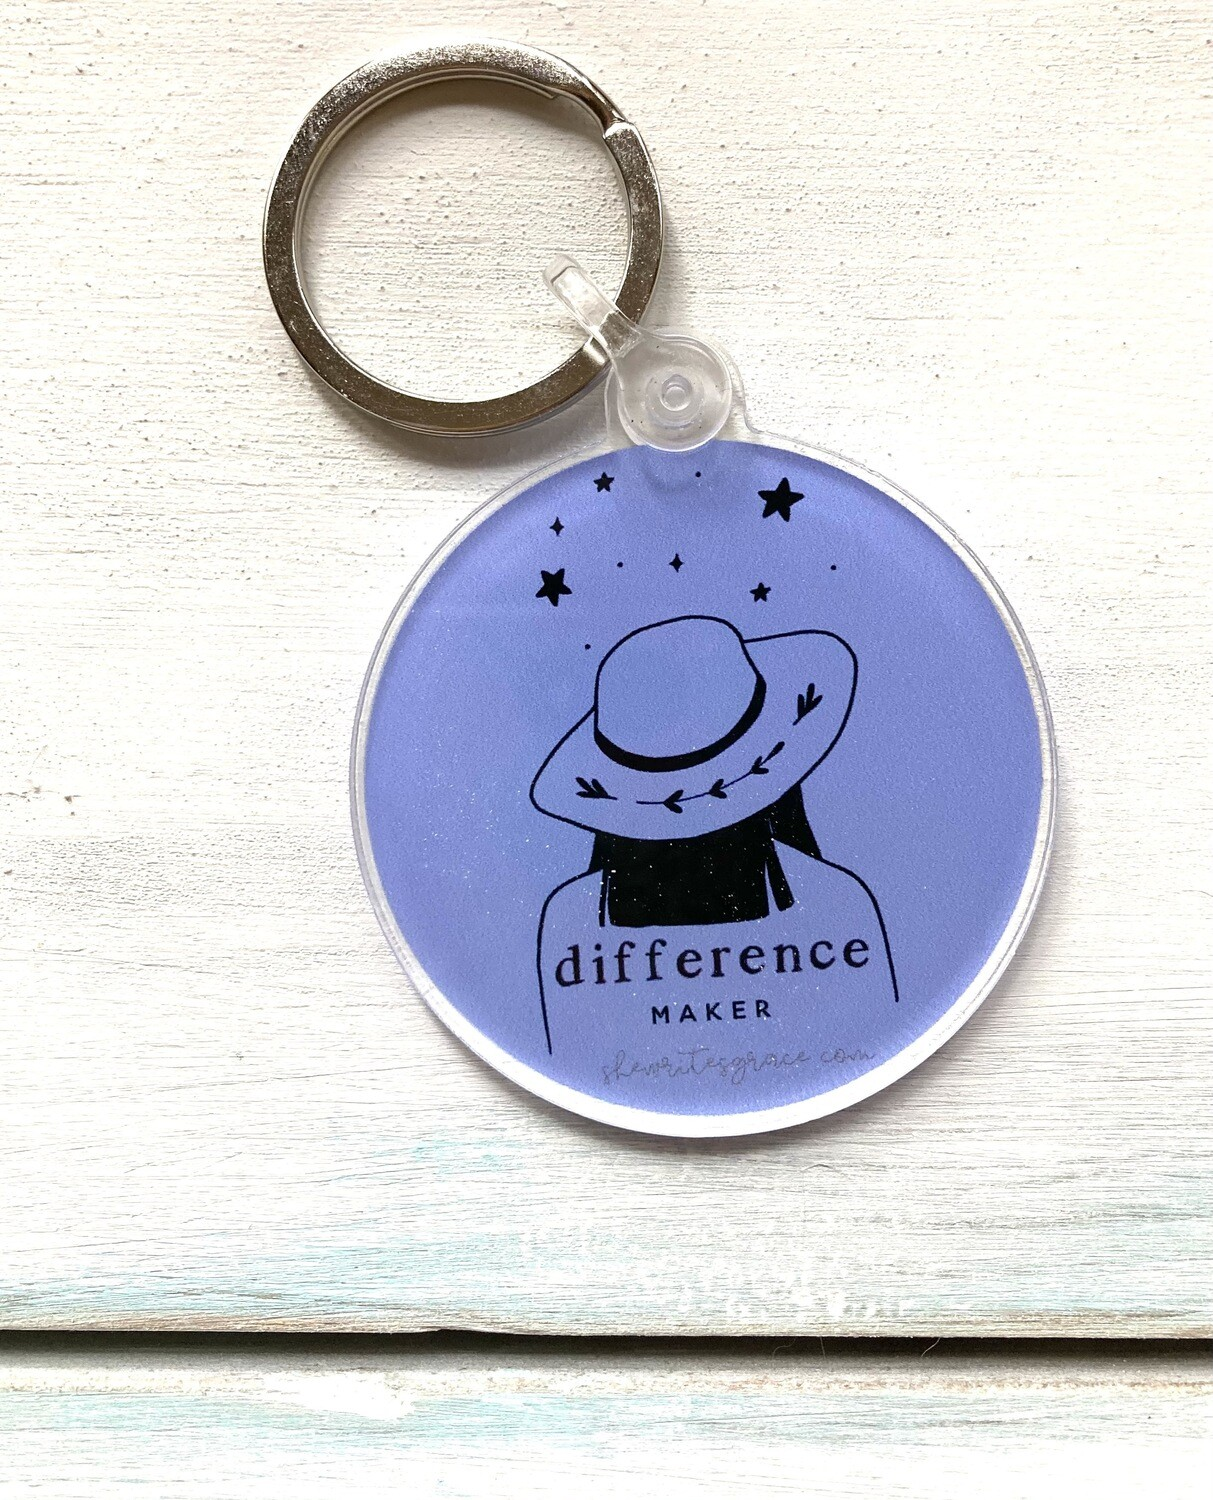 Difference Maker Keychain